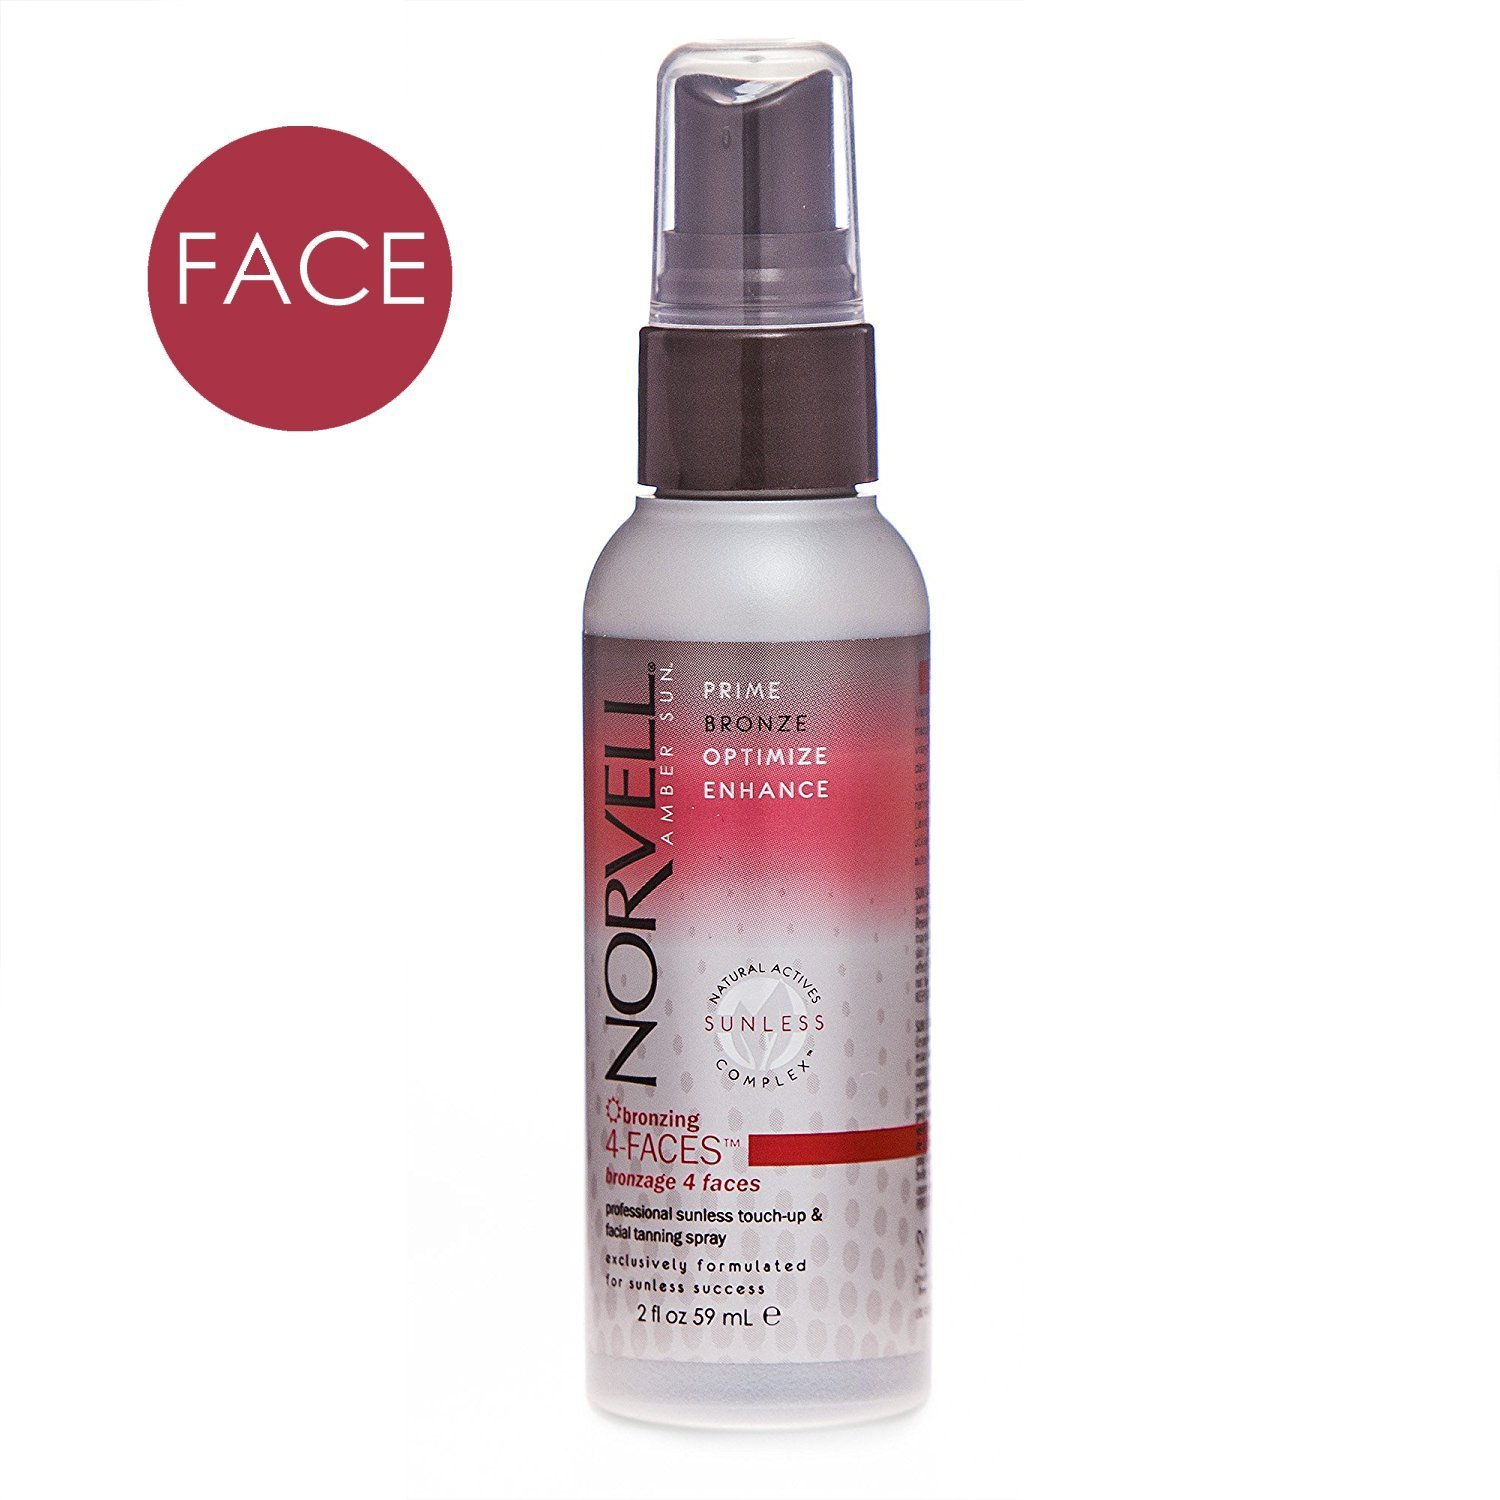 Norvell Bronzing 4-Faces Sunless Facial Self-Tanning & Touch-up Spray - Non Comedogenic Bronzer for Natural Sun-Kissed Glow, 2 fl.oz. Sunless Inc